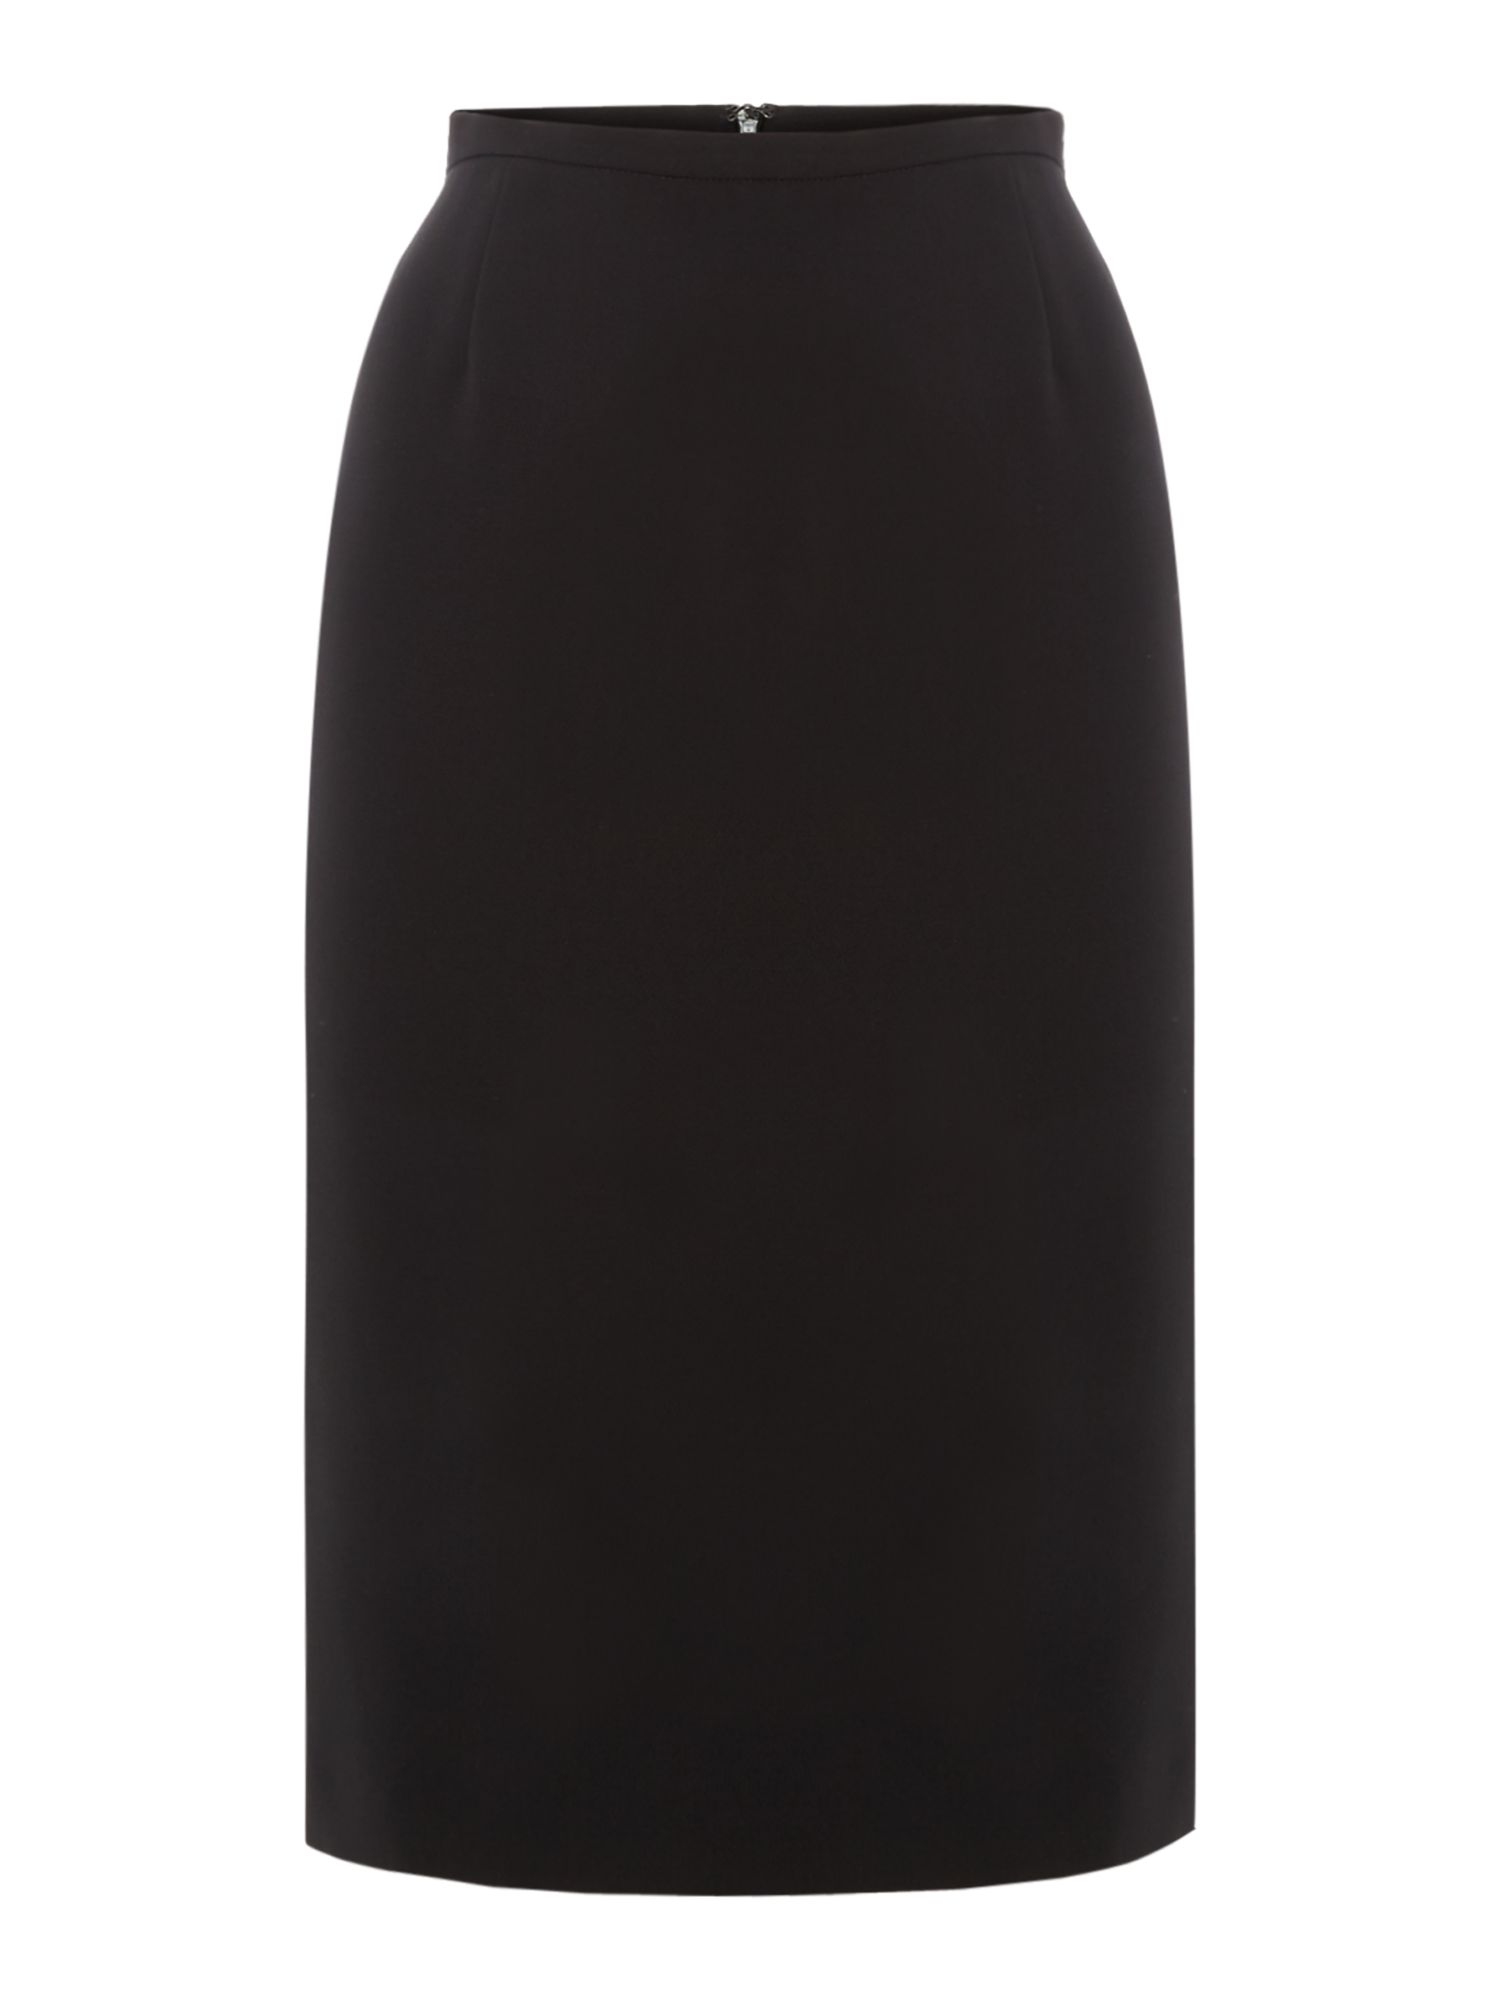 Max Mara Studio Rima black pencil skirt, Black